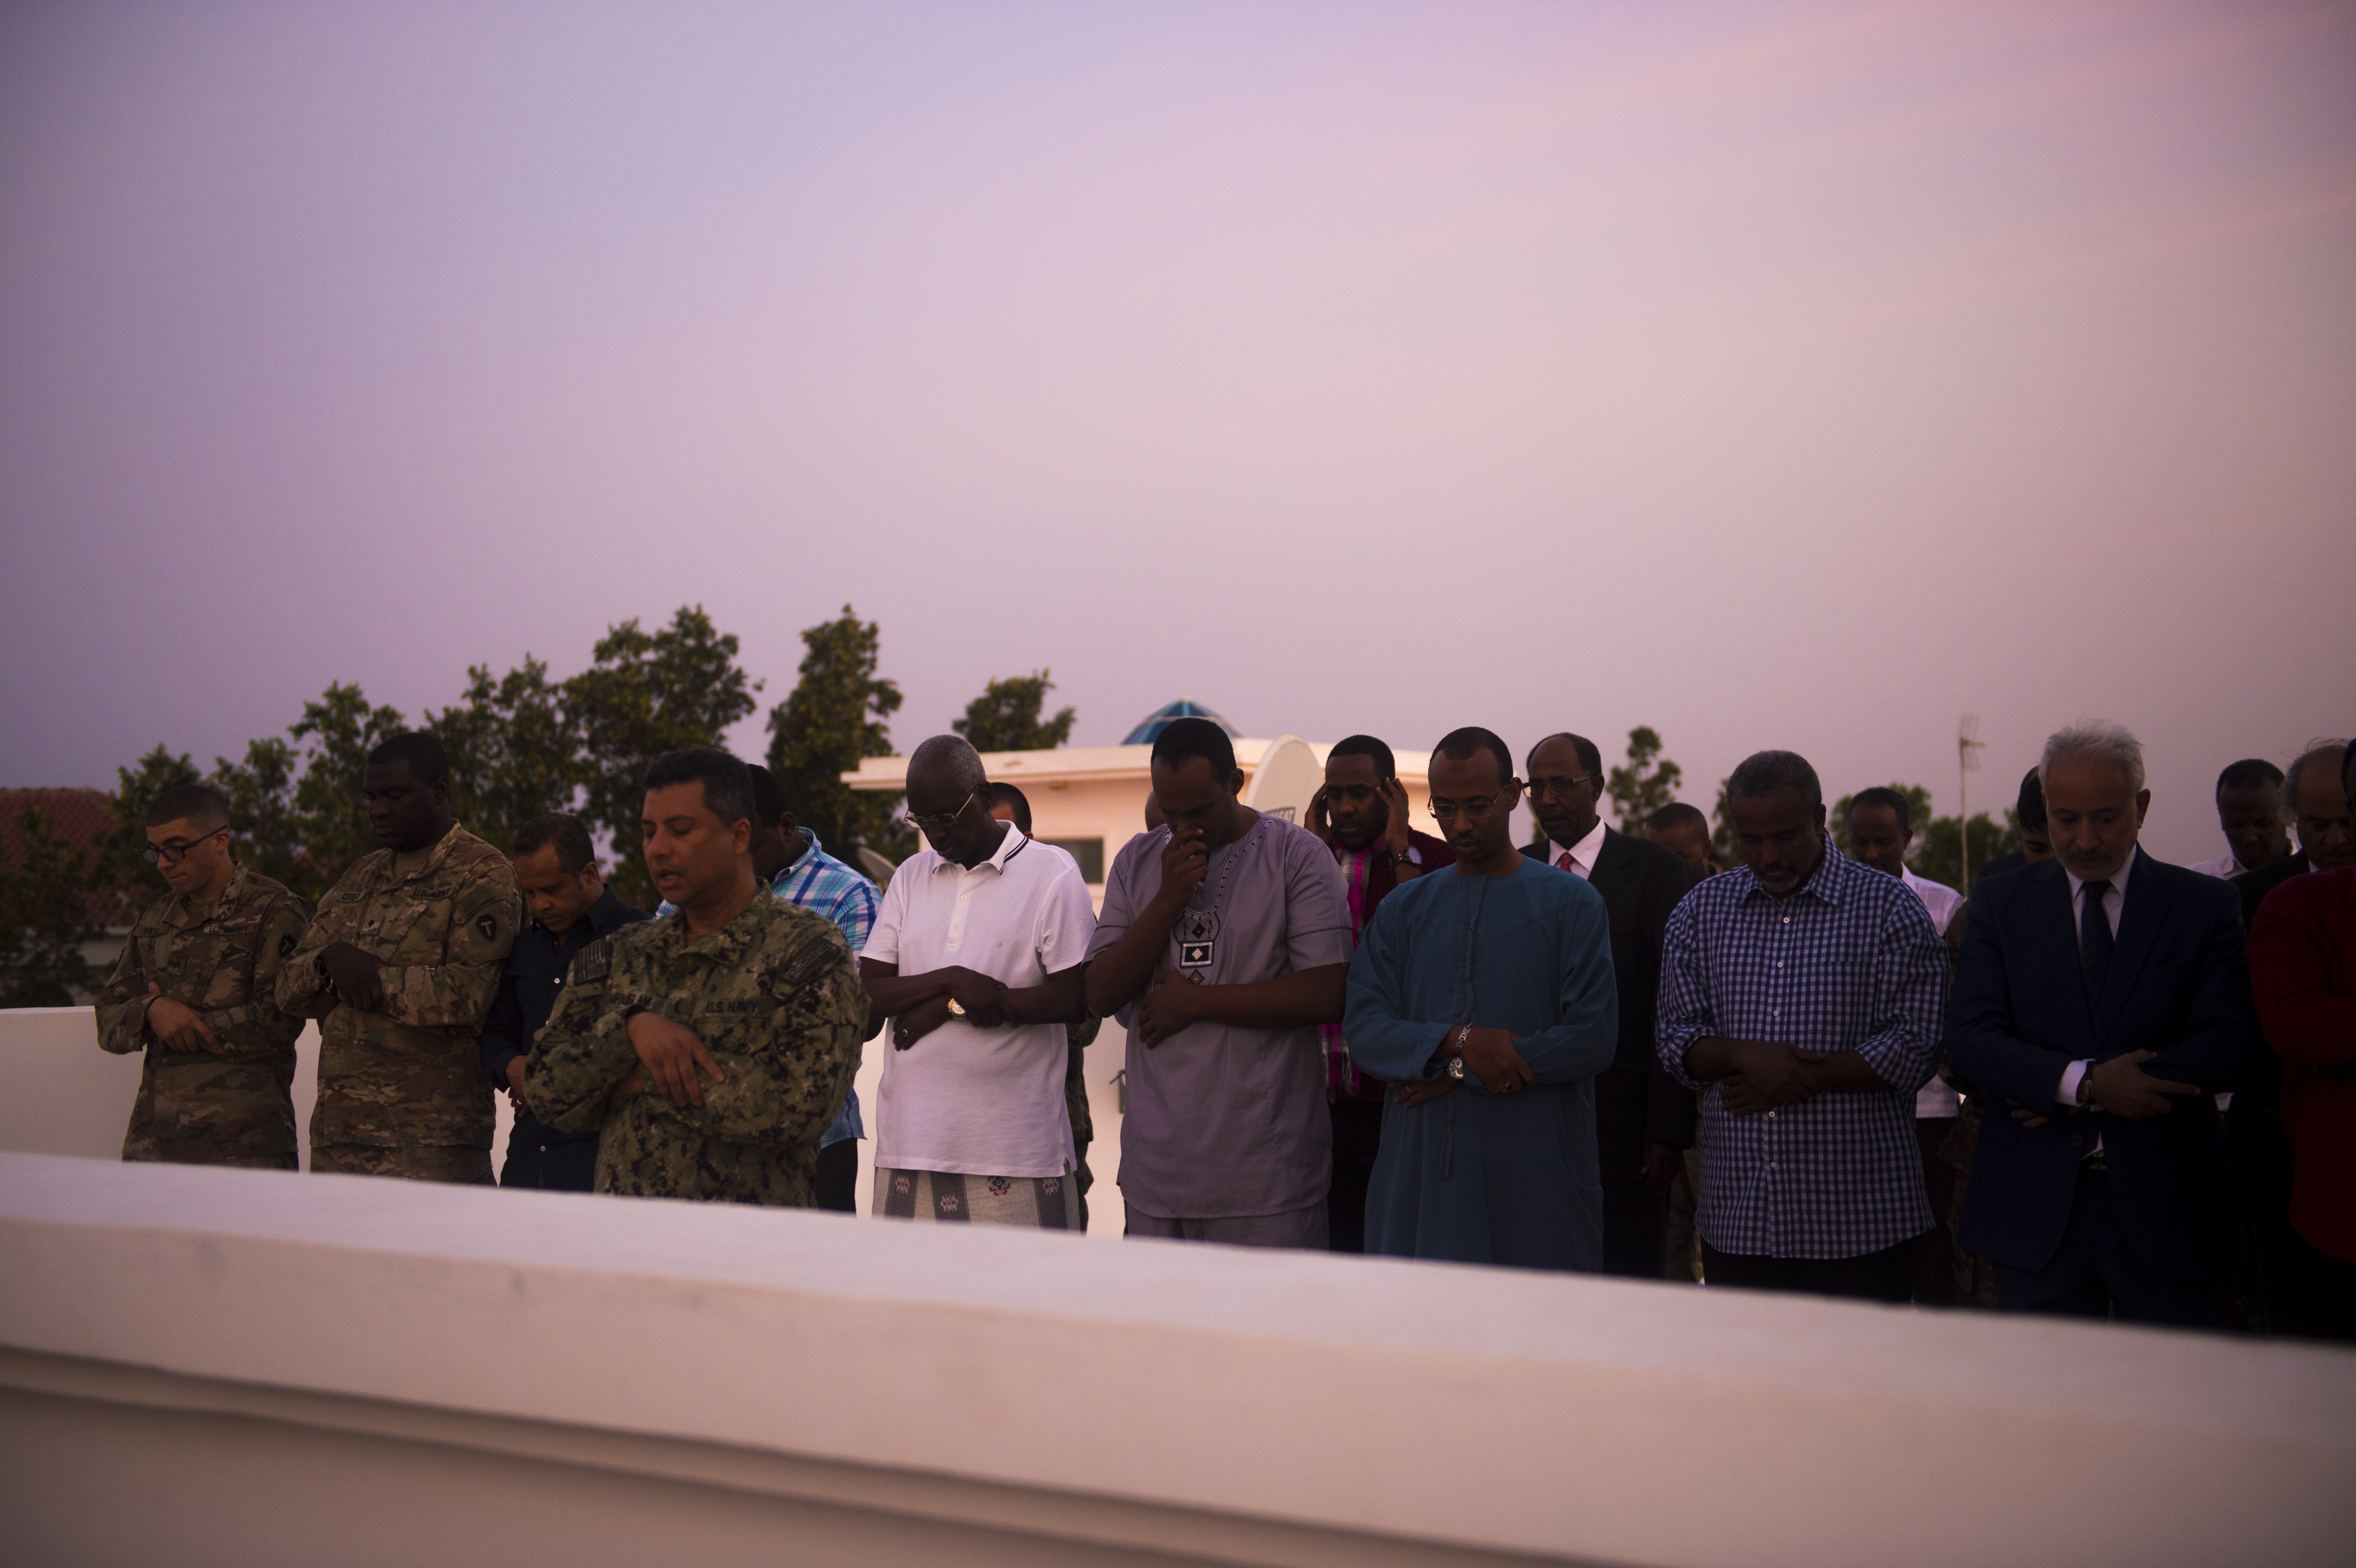 U.S. Navy Cmdr. Abduhena Saifulislam, chaplain, Africa Command, leads Muslims in prayer as the sun sets, beginning an Iftar at the residence of the U.S. Ambassador to the Republic of Djibouti, Larry André, May 22, 2018. André opened his home to celebrate two Iftars, one run by the Defense Attaché Office for senior Diboutian Military and security leaders, the second for senior government, diplomatic, and business leaders. (U.S. Air Force photo by Senior Airman Scott Jackson)